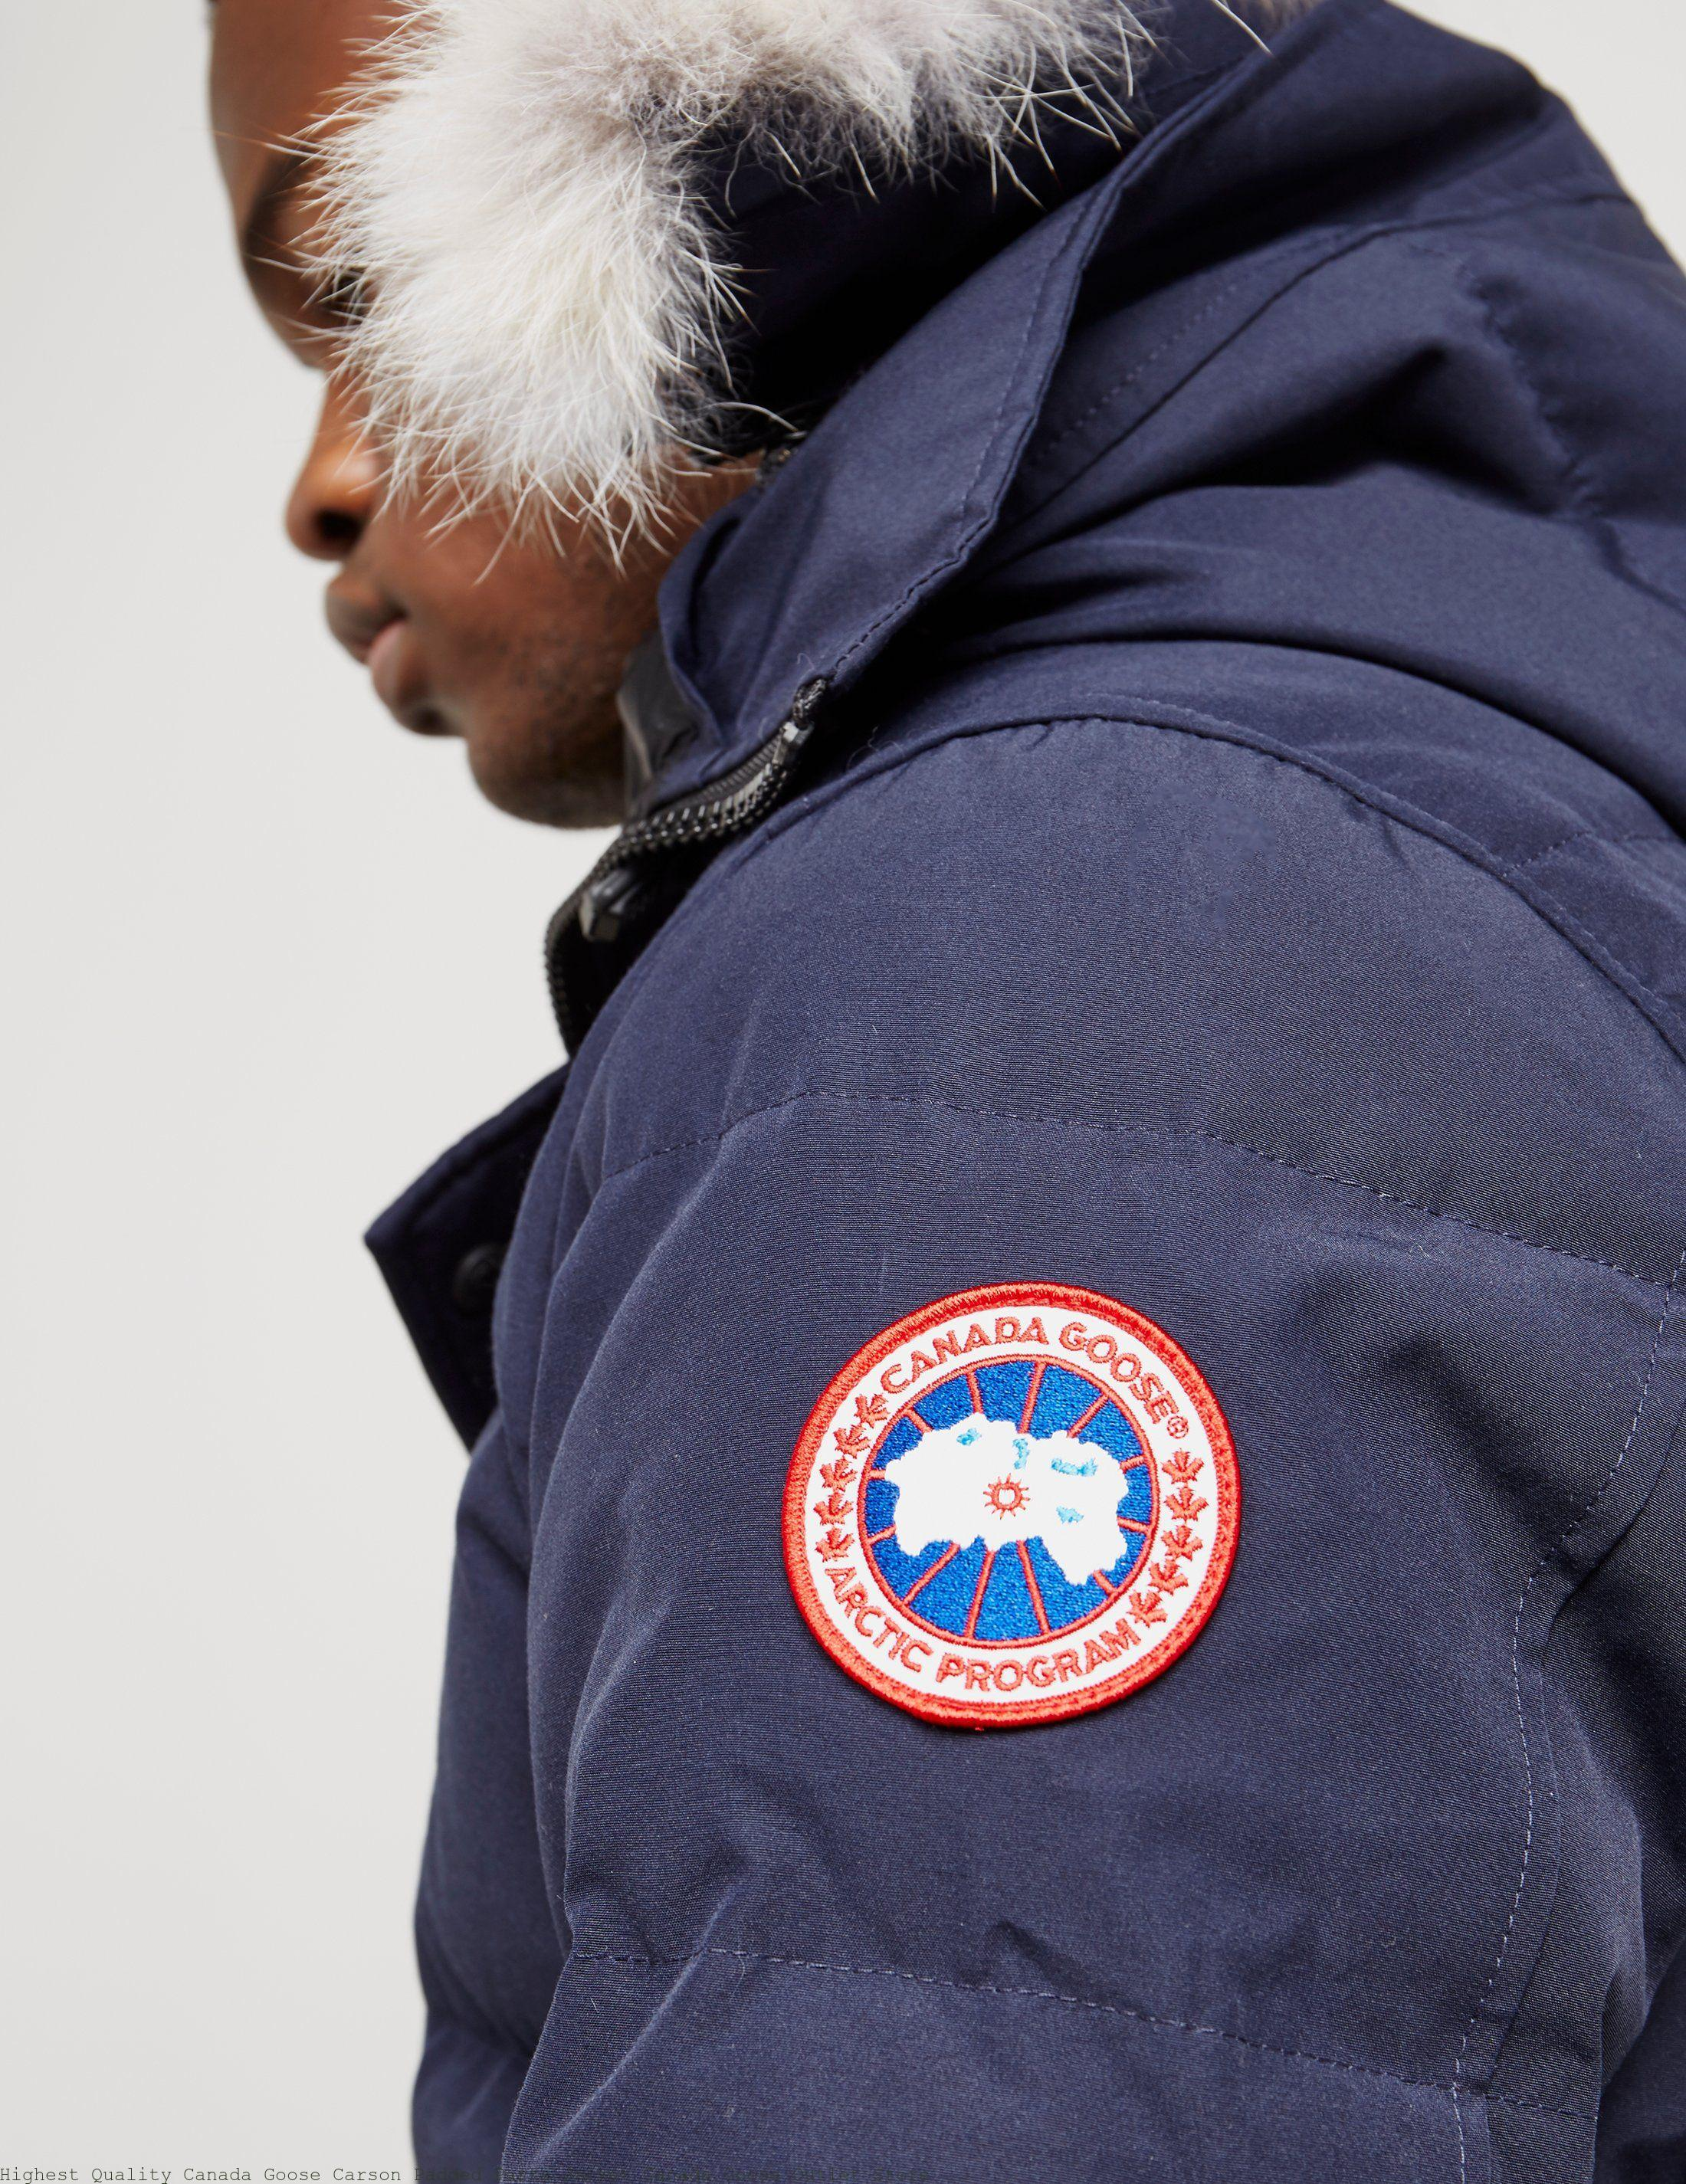 Highest Quality Canada Goose Carson Padded Parka Jacket Canada Goose Outlet  Store 17eb5c33a